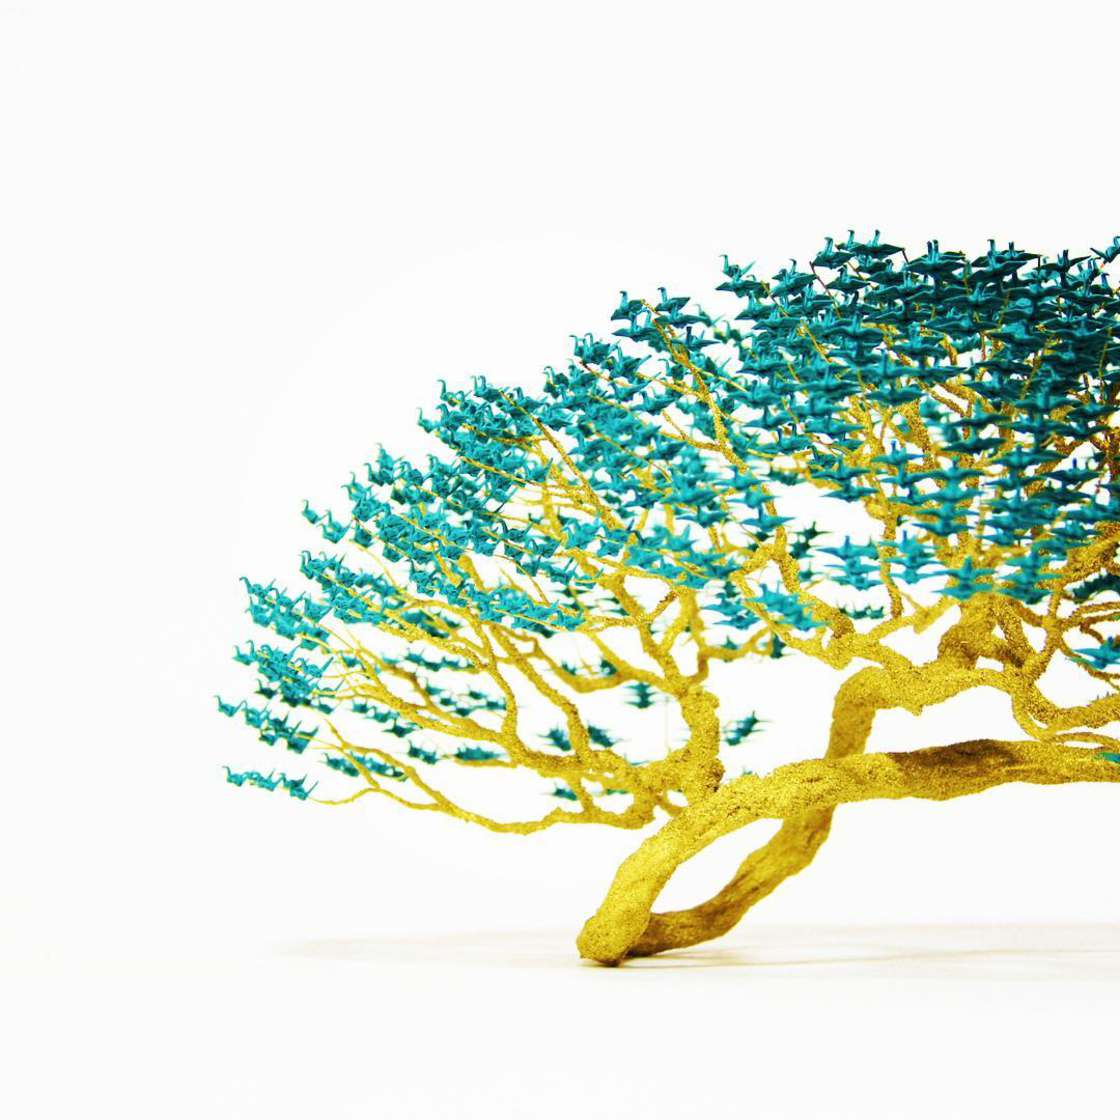 Amazing bonsai made of thousands of miniature origami